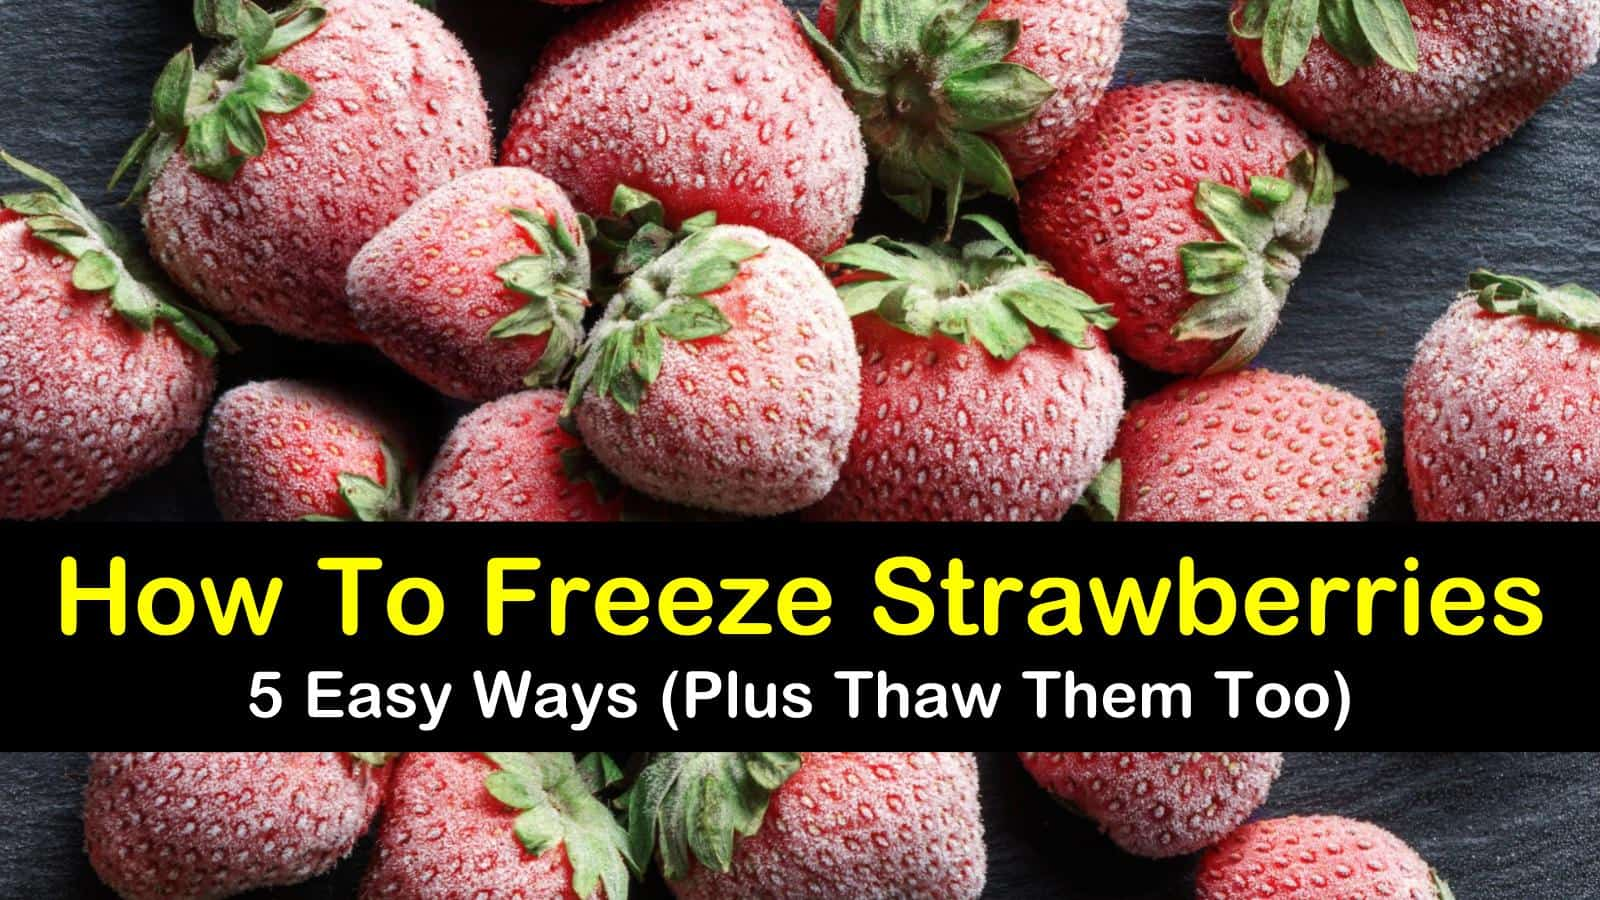 how to freeze strawberries titleimg1